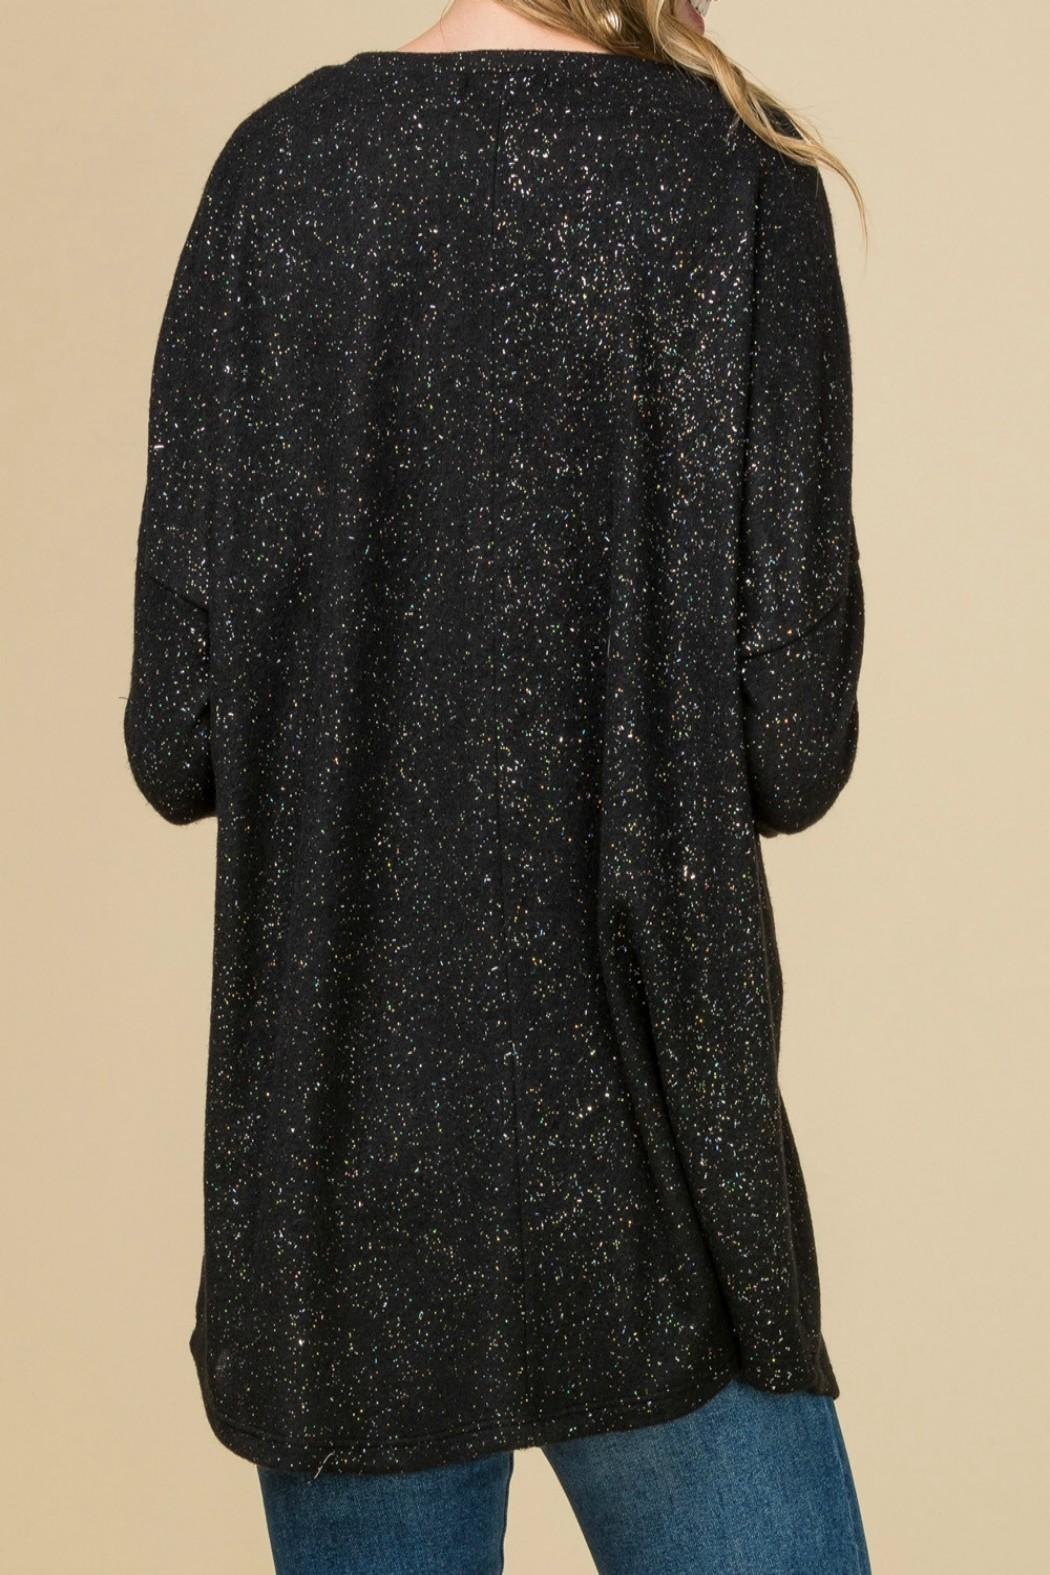 Entro Metallic Speckled Top - Front Full Image